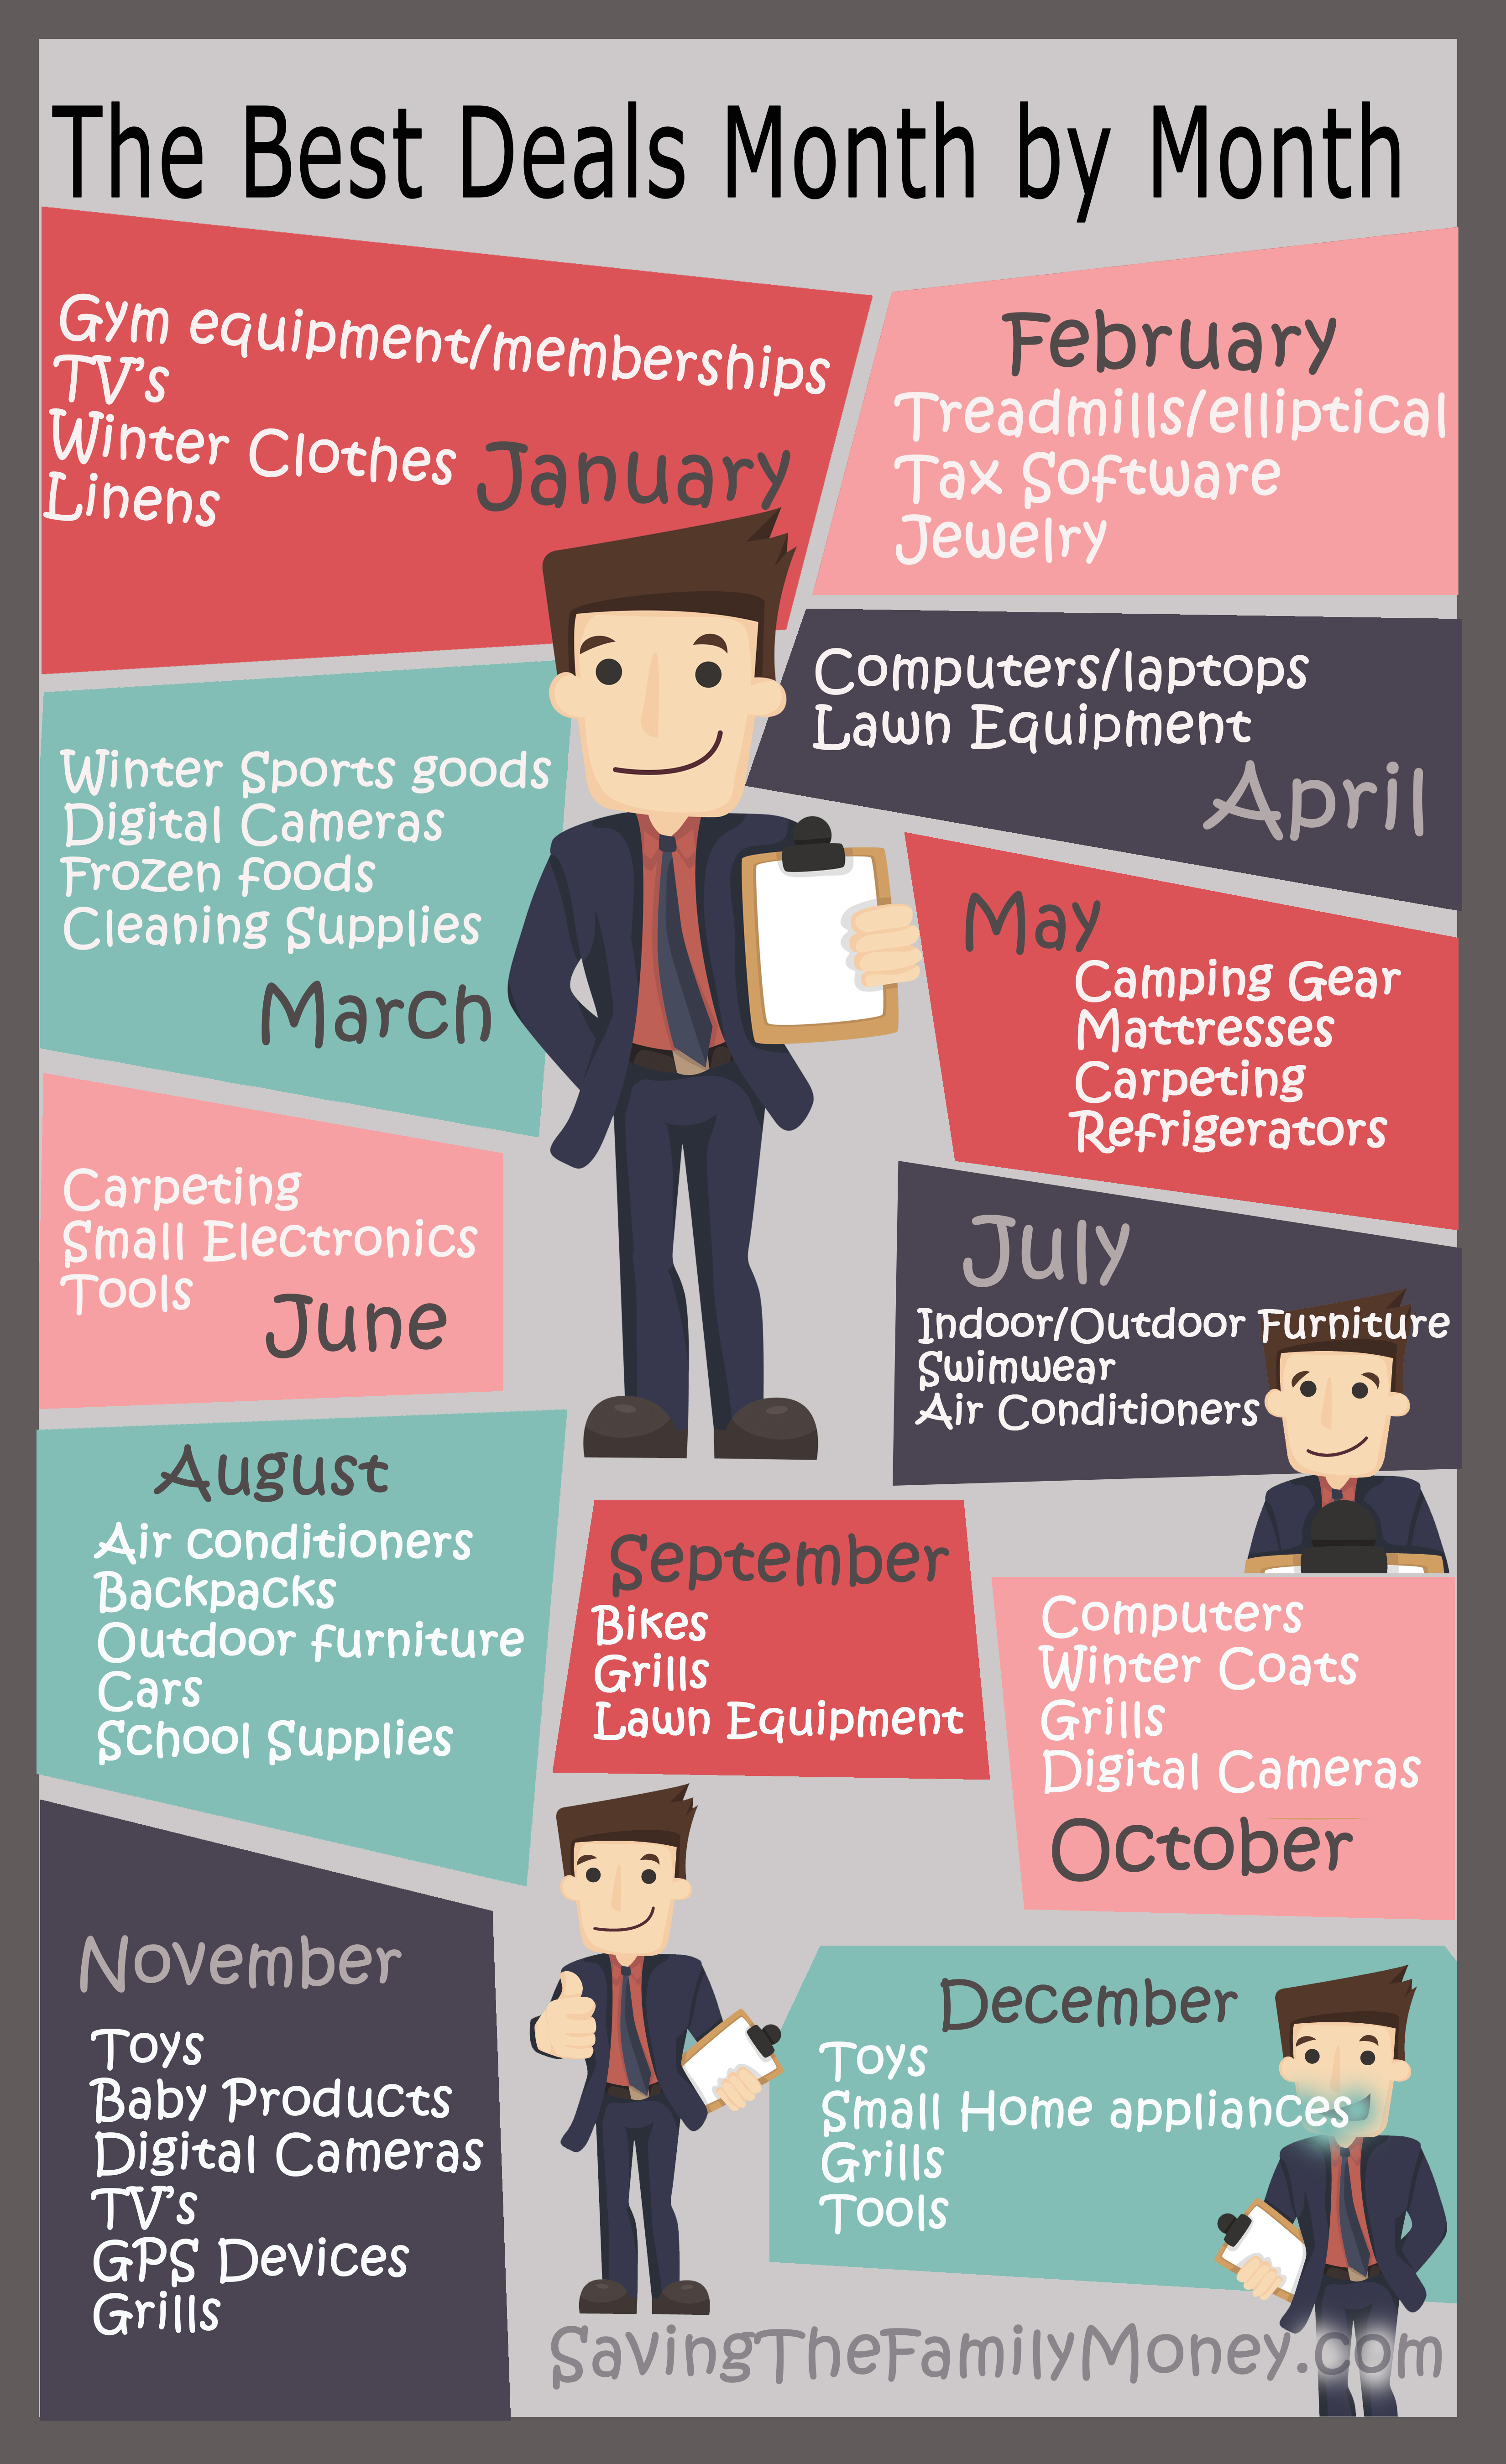 Best Deals Month by Month infographic